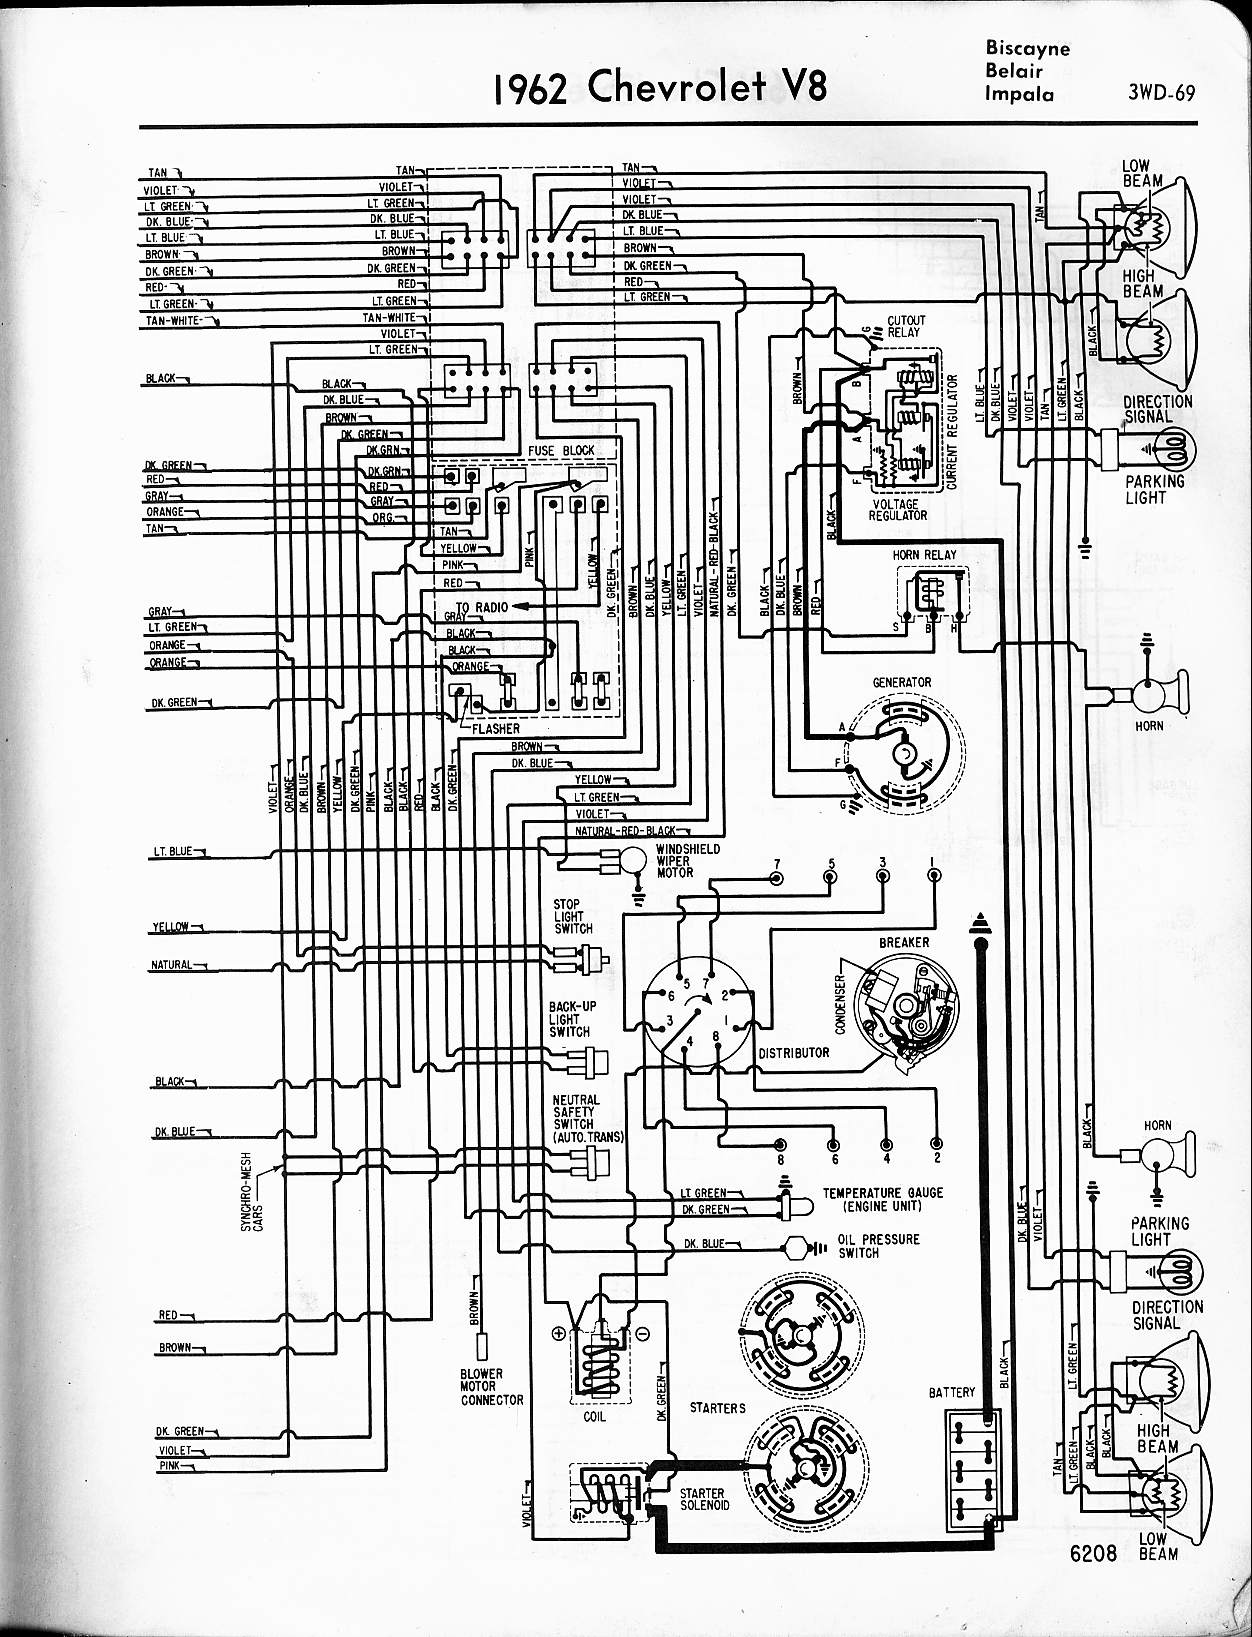 64 Chevy Impala Wiring - Wiring Diagram Database